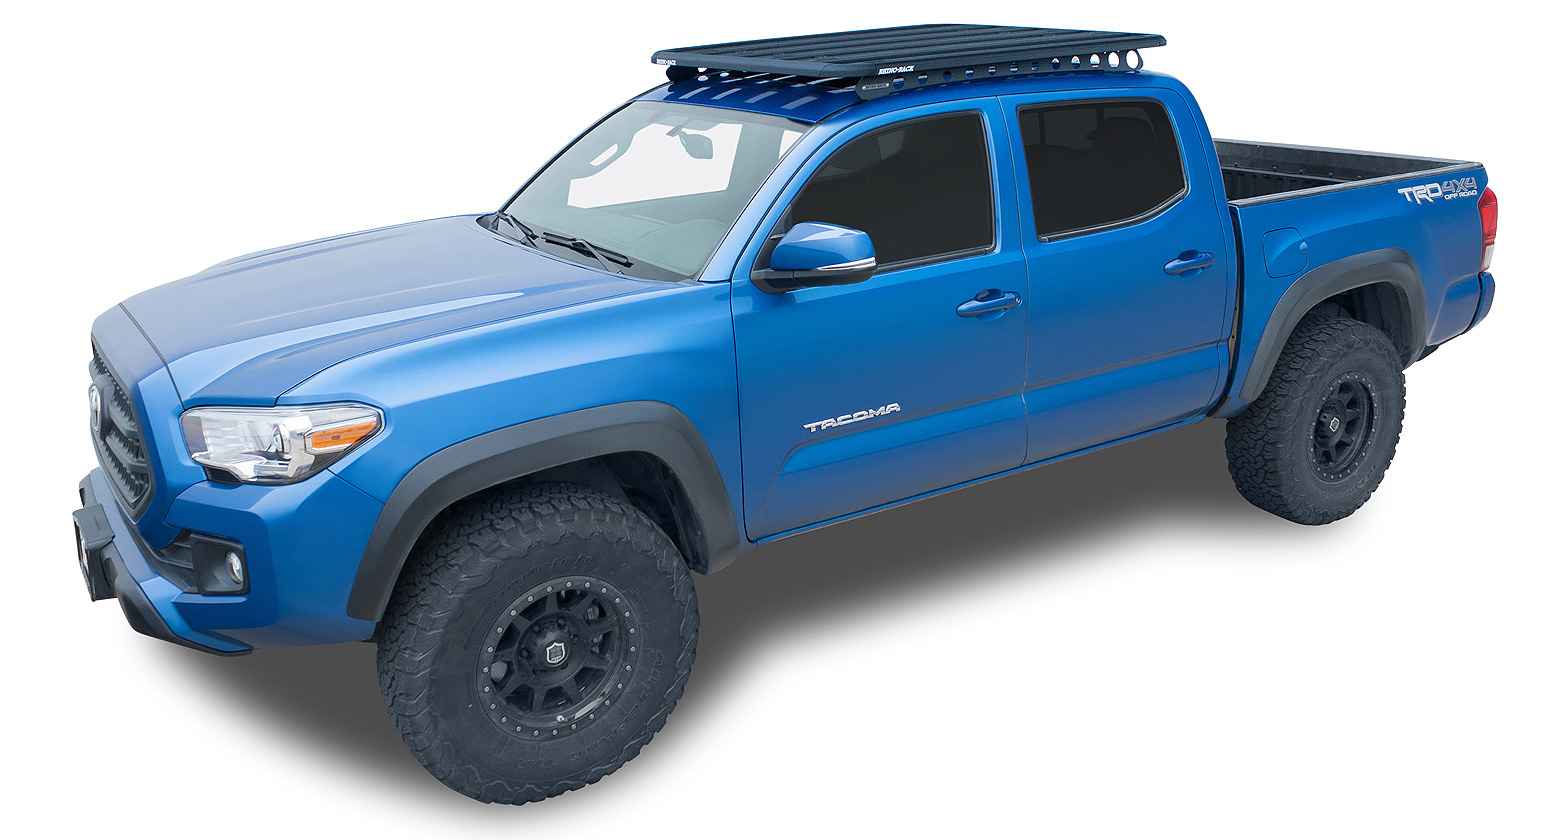 Rhino-Rack Pioneer Platform (60 x 49) [JA9008] - $1,110 88 : Pure Tacoma,  Parts and Accessories for your Toyota Tacoma